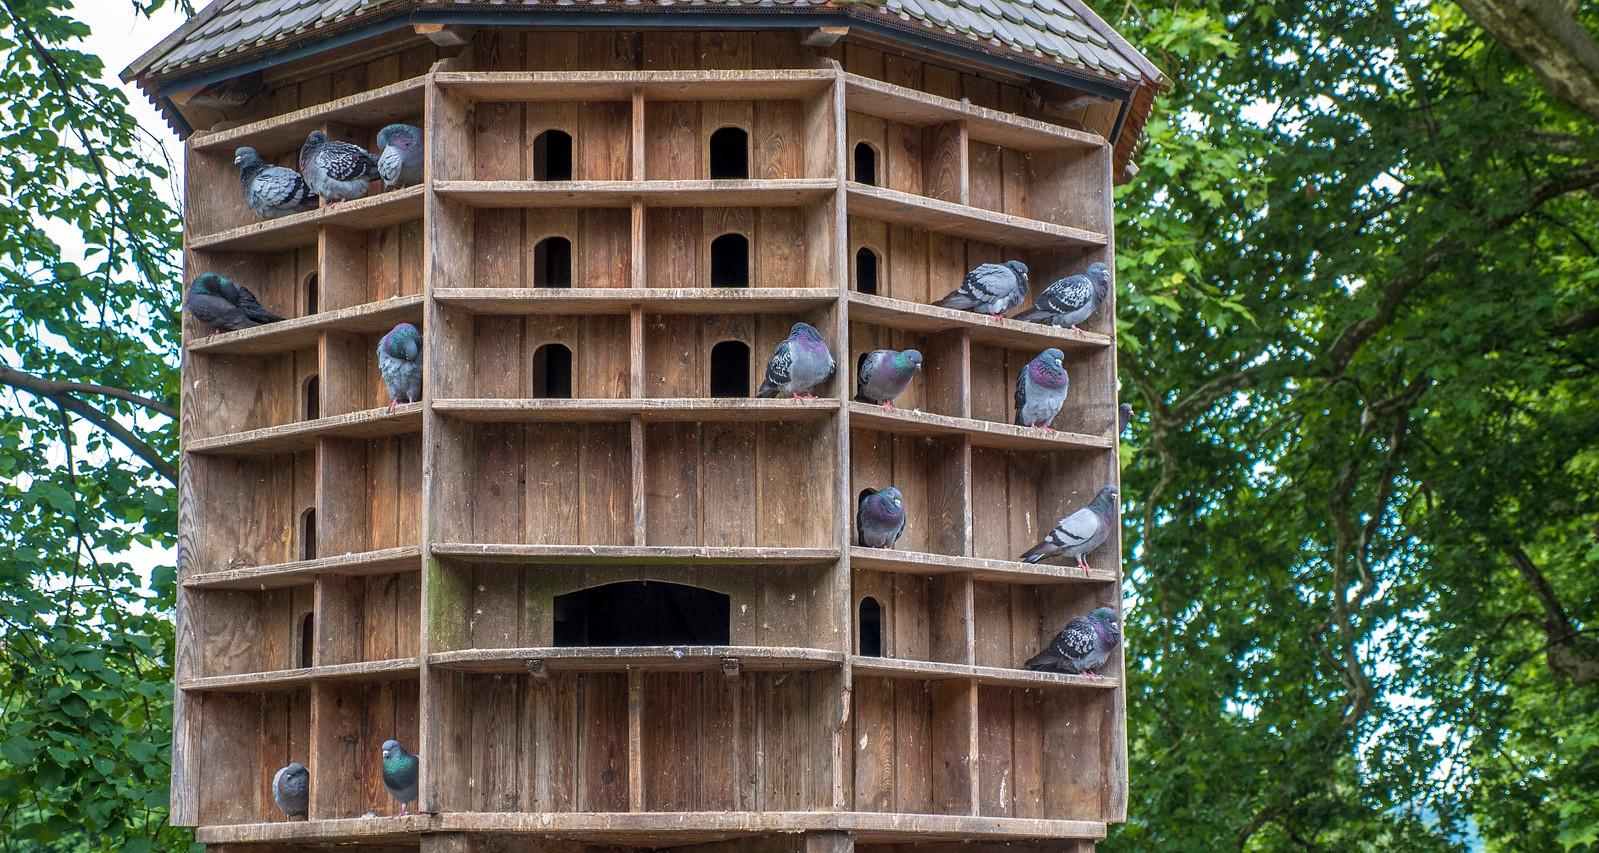 Pigeon house. Things to do in Tubingen Germany.